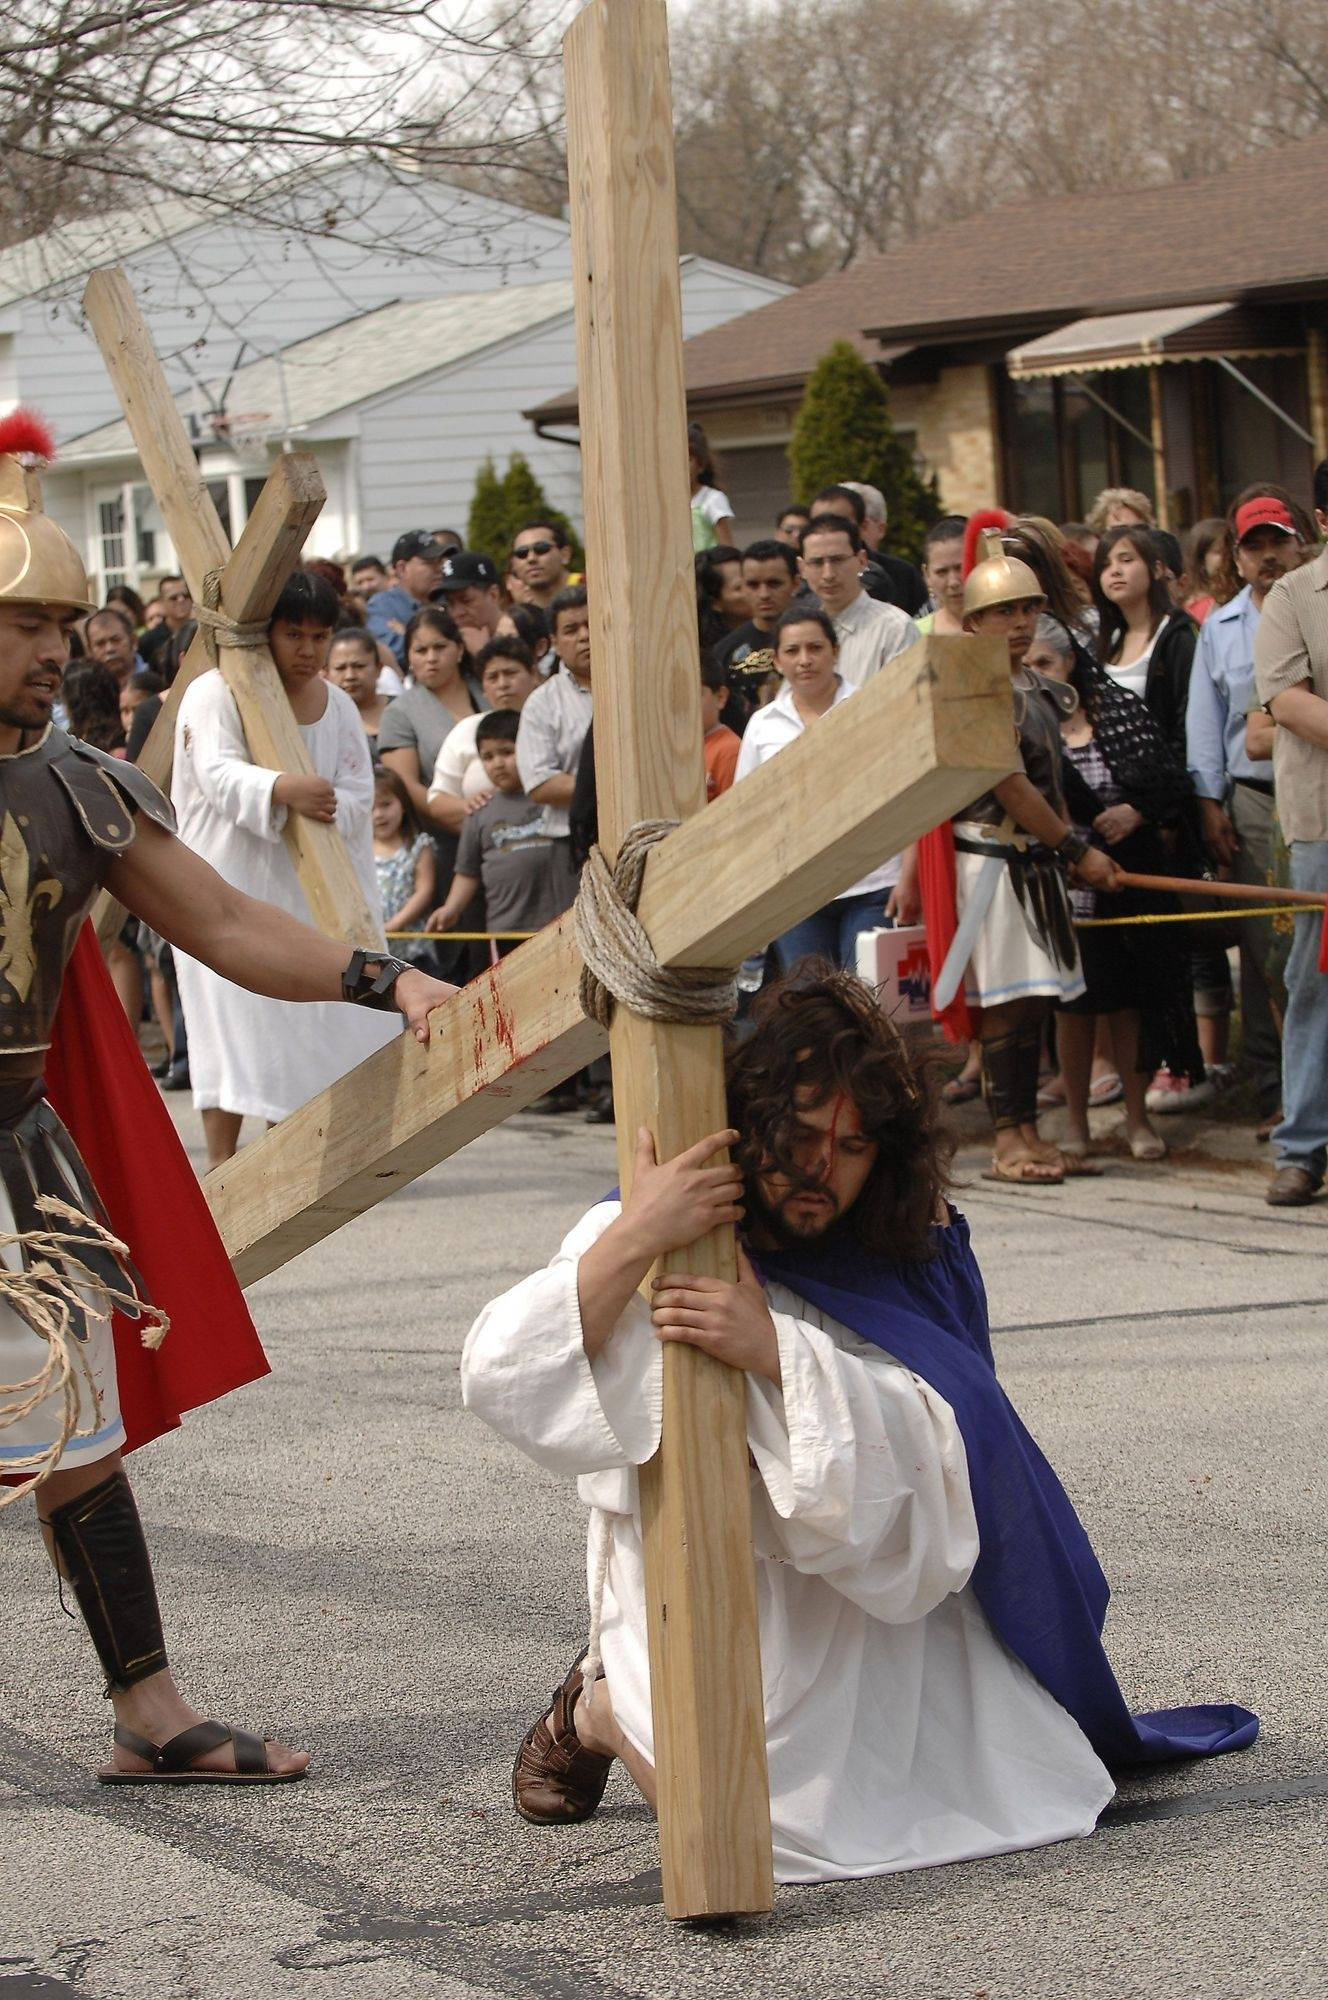 Jesus falls with his cross on Anderson Drive Friday in Palatine during the annual re-enactment of the crucifixion of Jesus Christ as performed by members of Mision San Juan Diego in Arlington Heights.